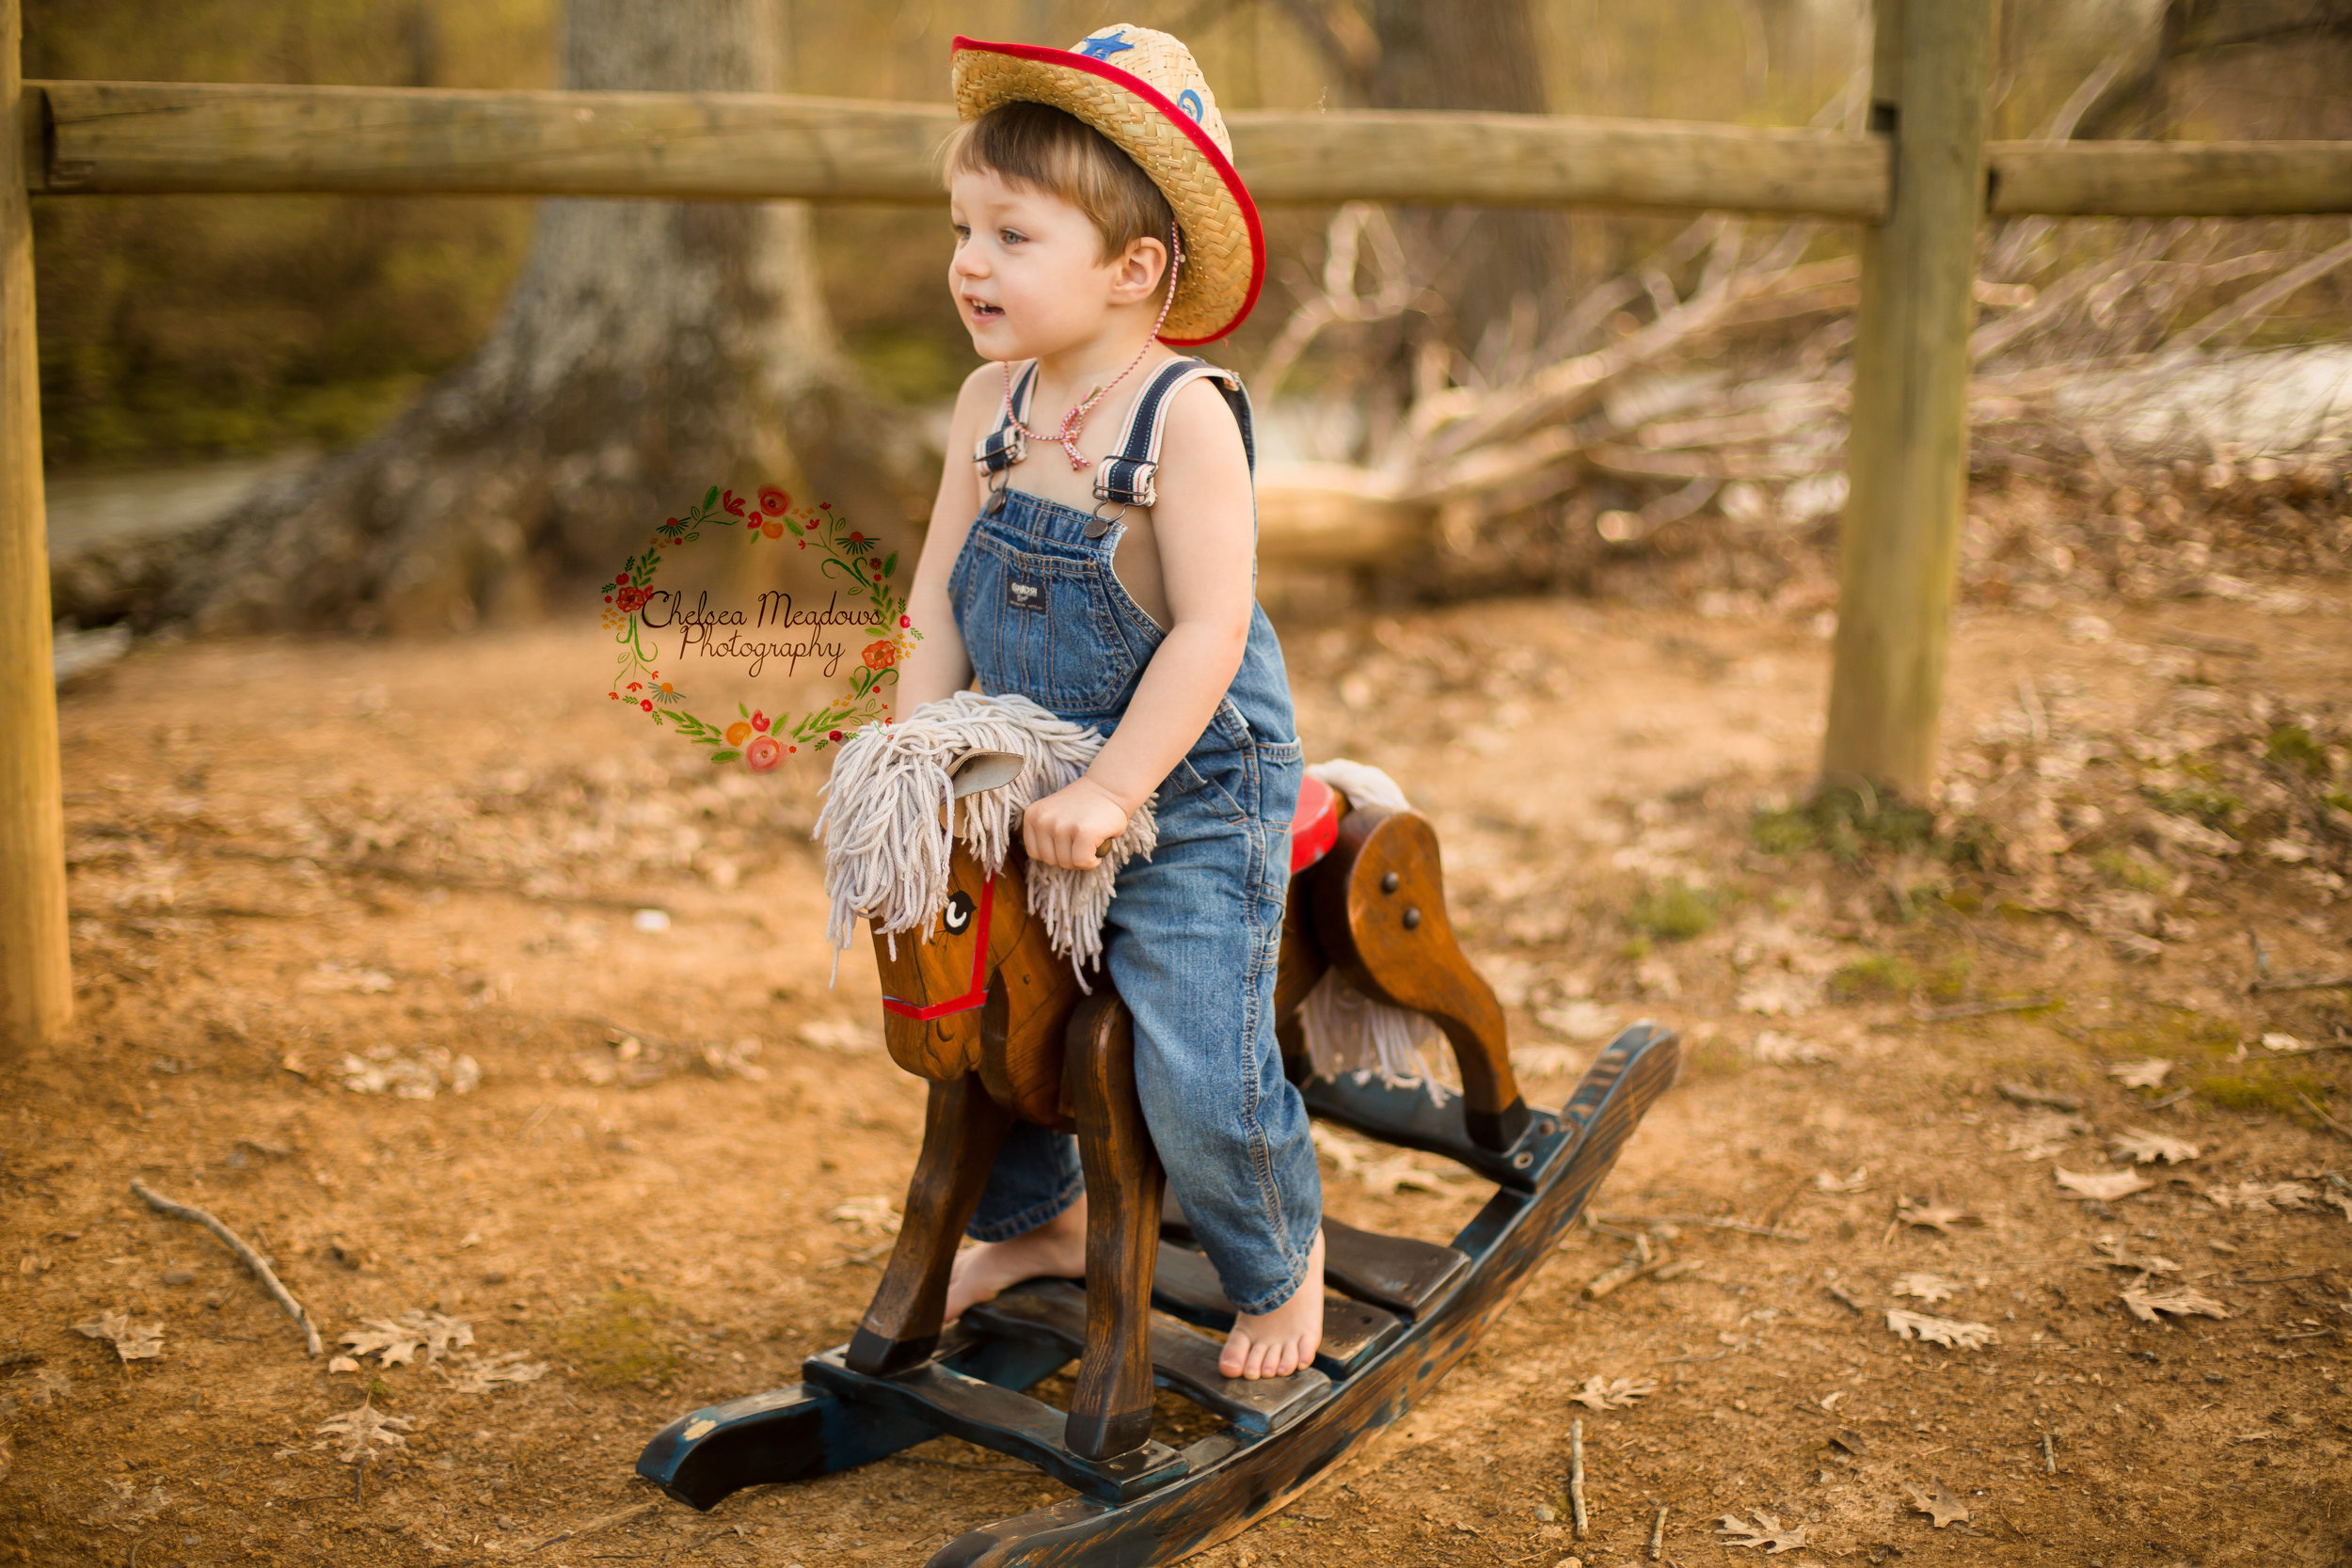 Grayson Cowboy Photos - Nashville family Photographer - Chelsea Meadows Photography (40)_edited-2.jpg